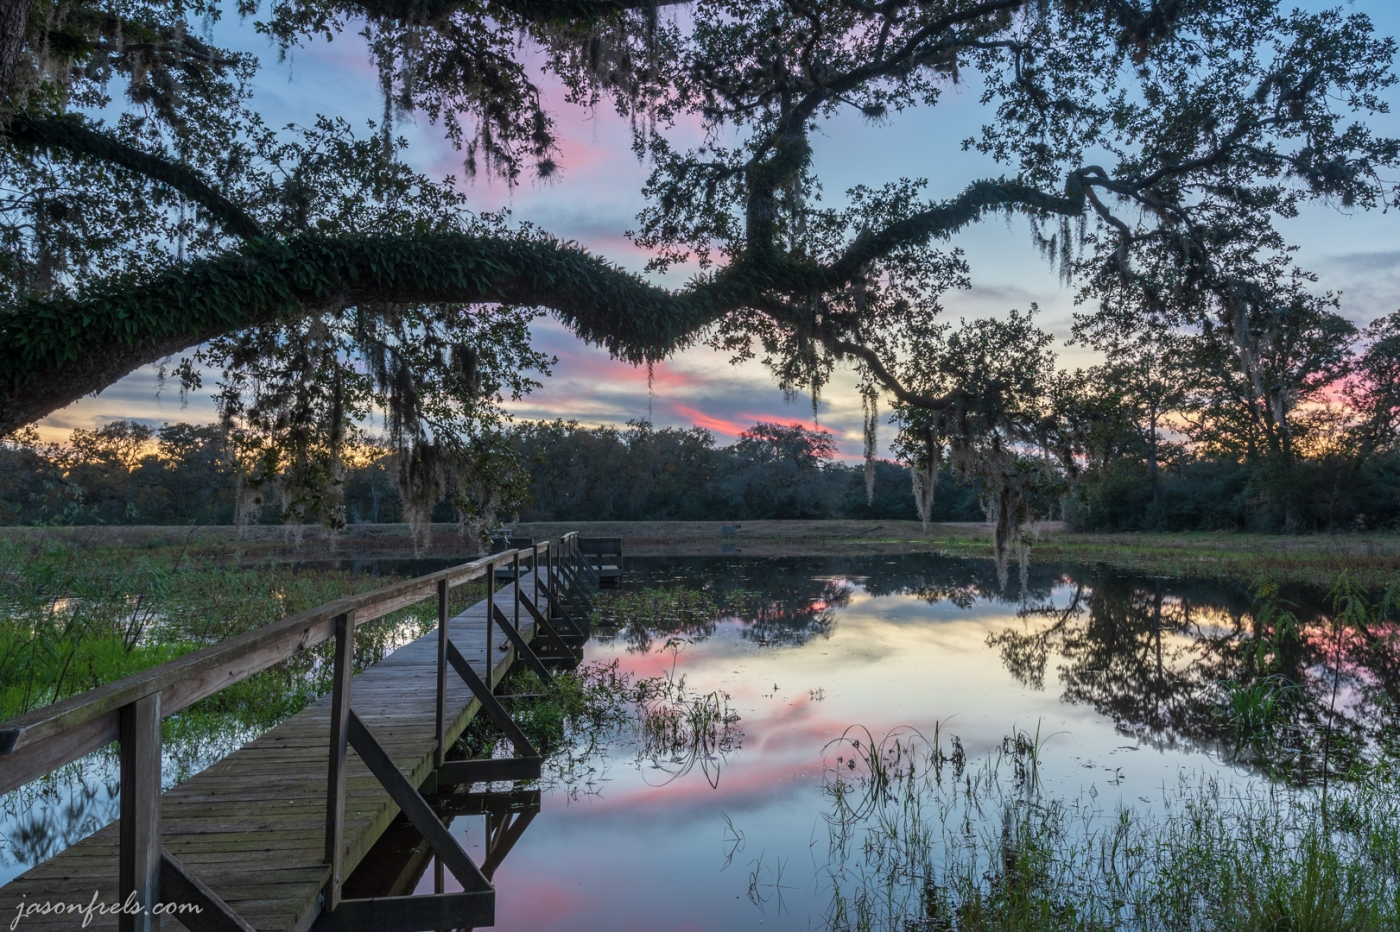 HDR merge of blue hour over pond